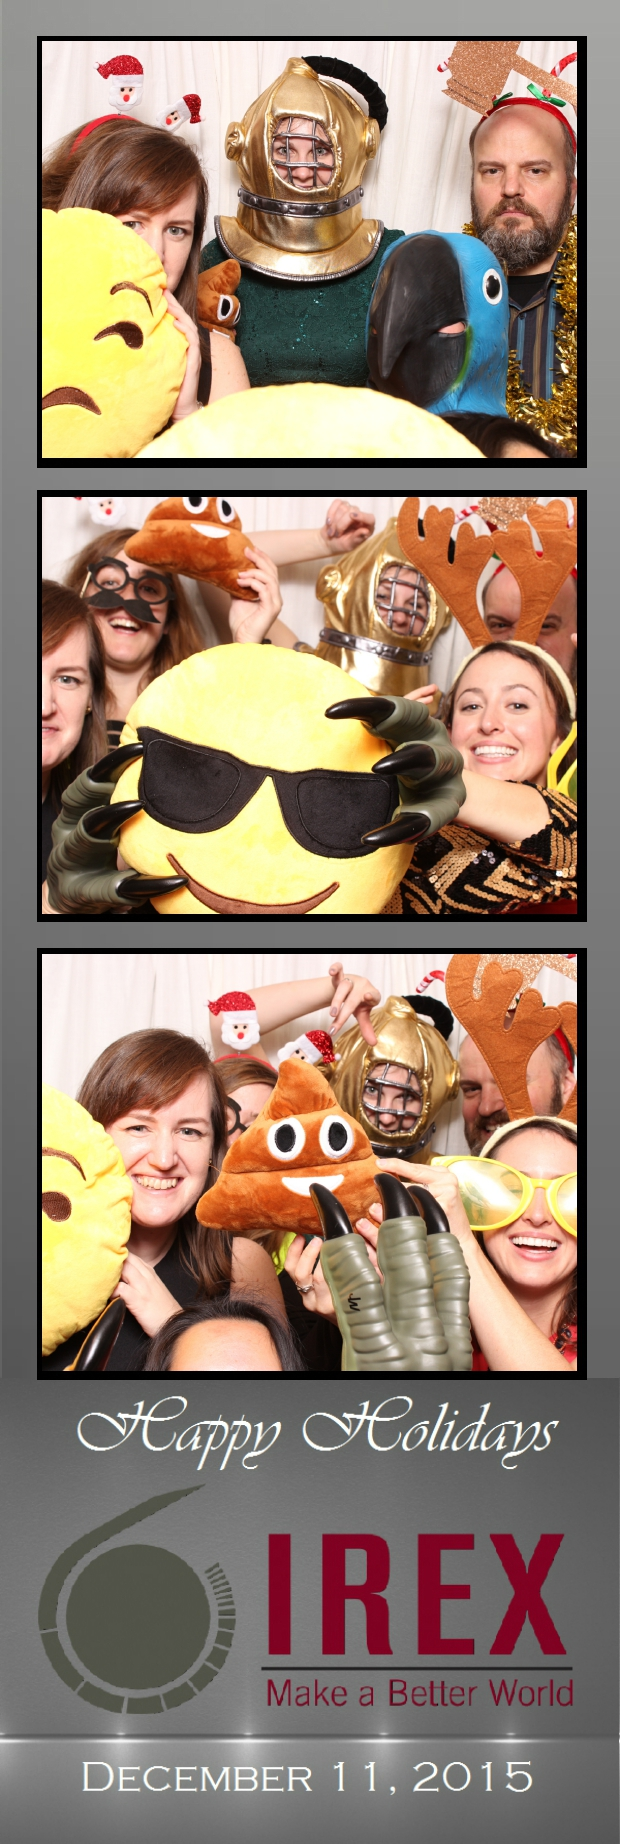 Guest House Events Photo Booth Strips IREX (49).jpg